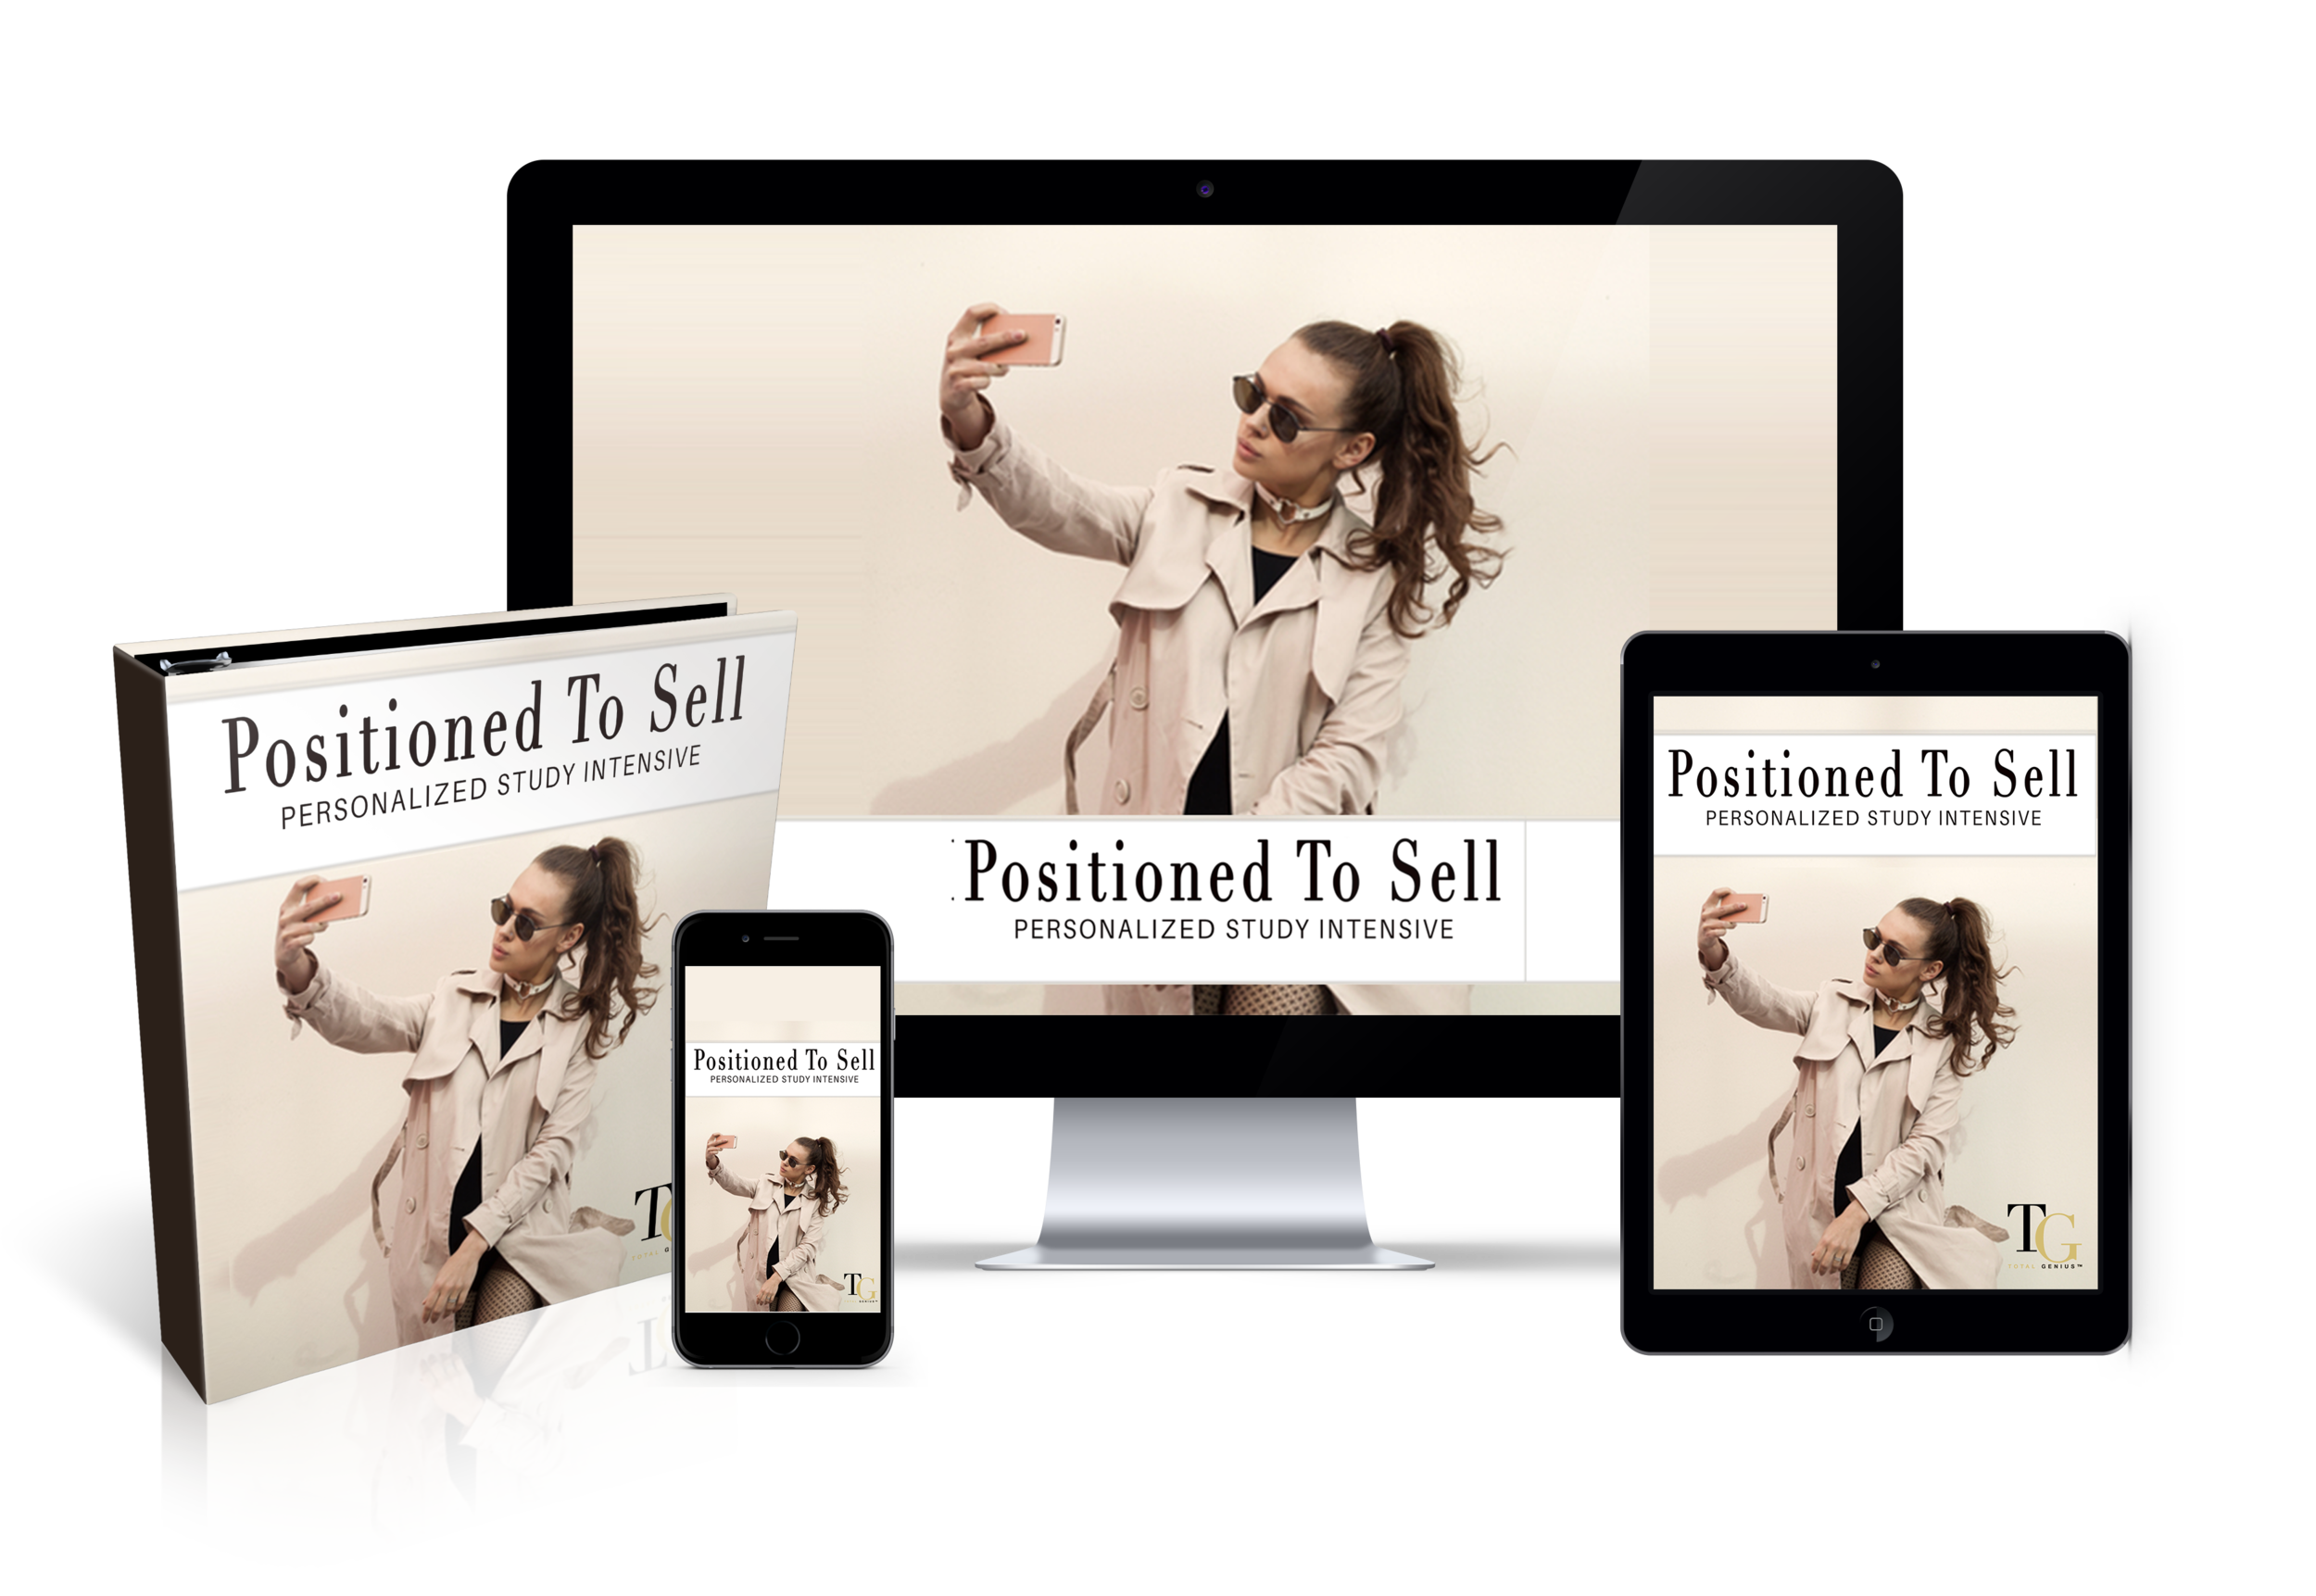 Positioned to Sell, get clients http://positionedtosell.totalgenius.net